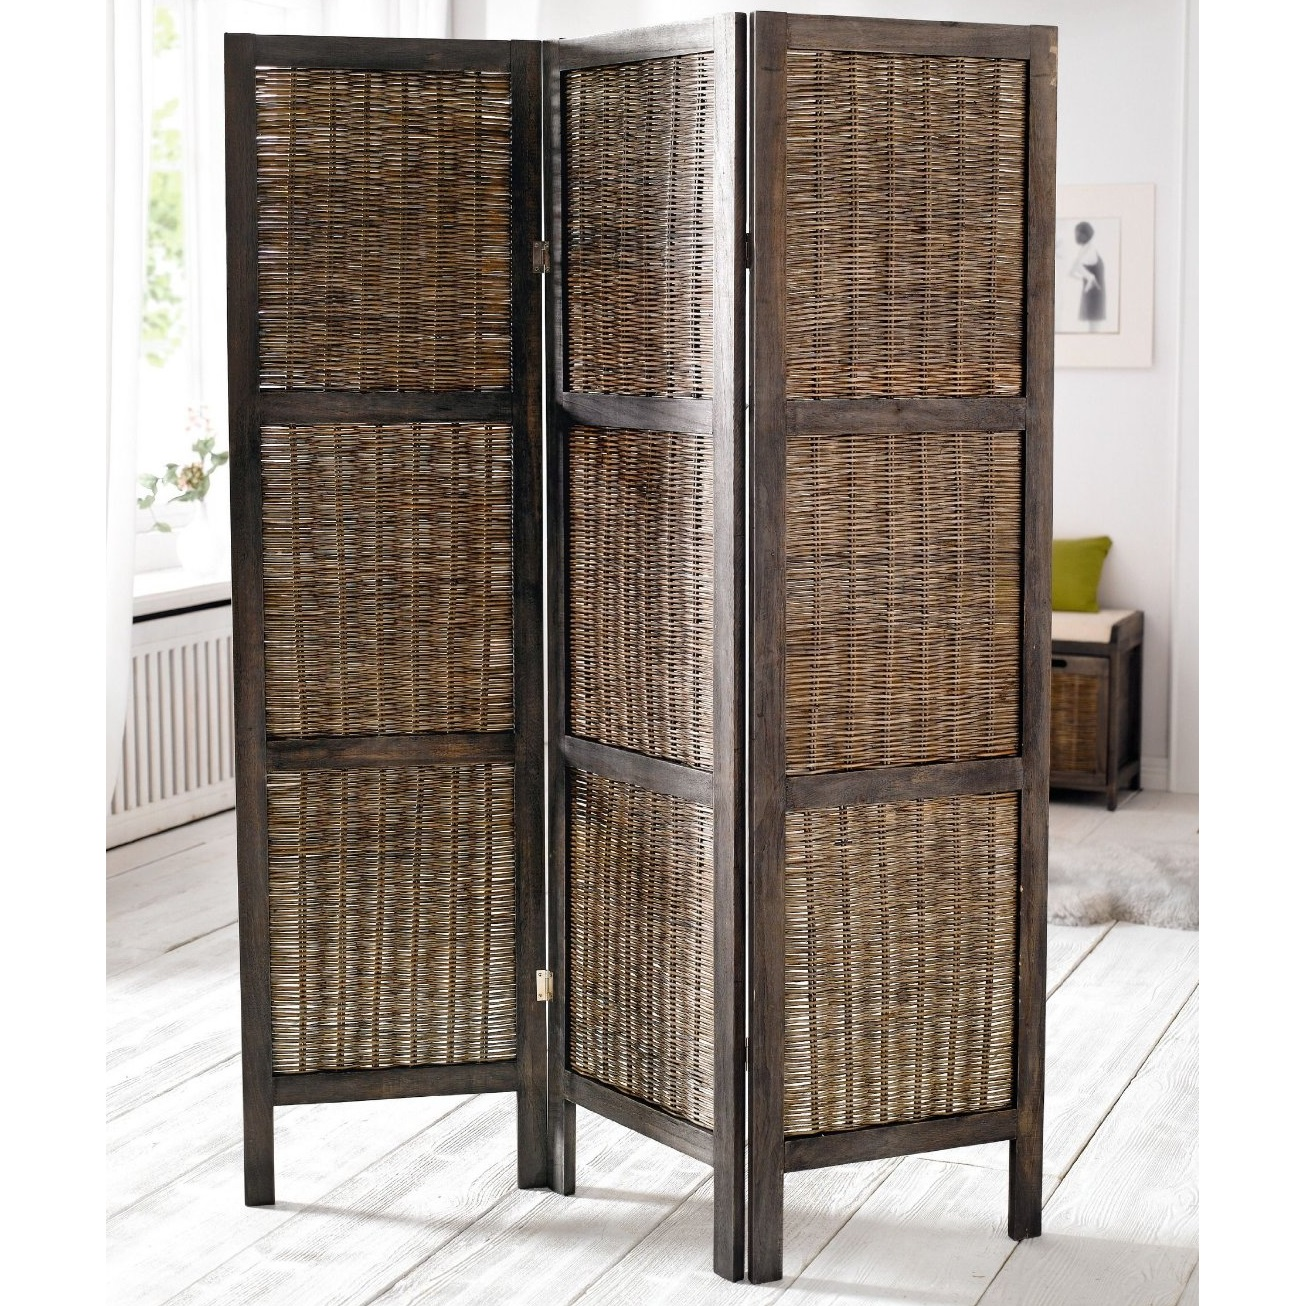 Ebay Private Listing >> WOODEN FRAMED WICKER ROOM DIVIDER PRIVACY SCREEN/PARTITION SHABBY CHIC VINTAGE | eBay